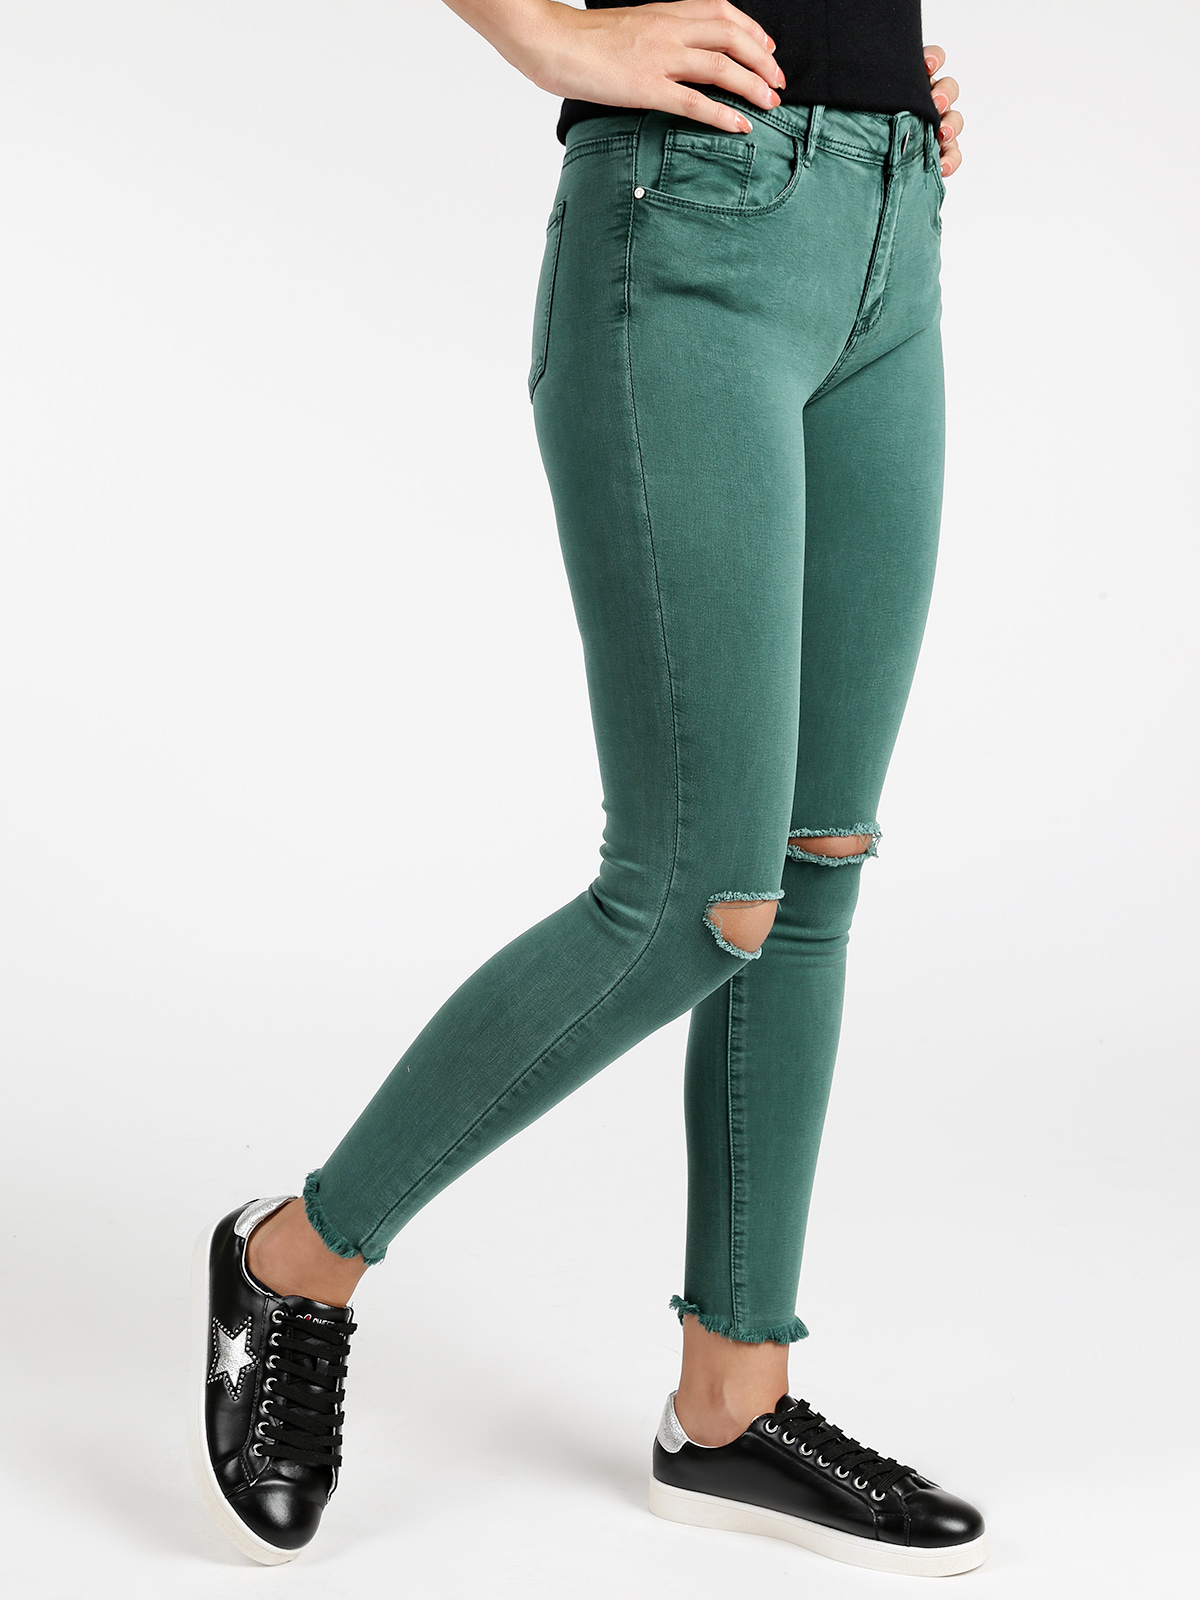 Woman Skinny Jeans Ripped Fashion Casual Trousers